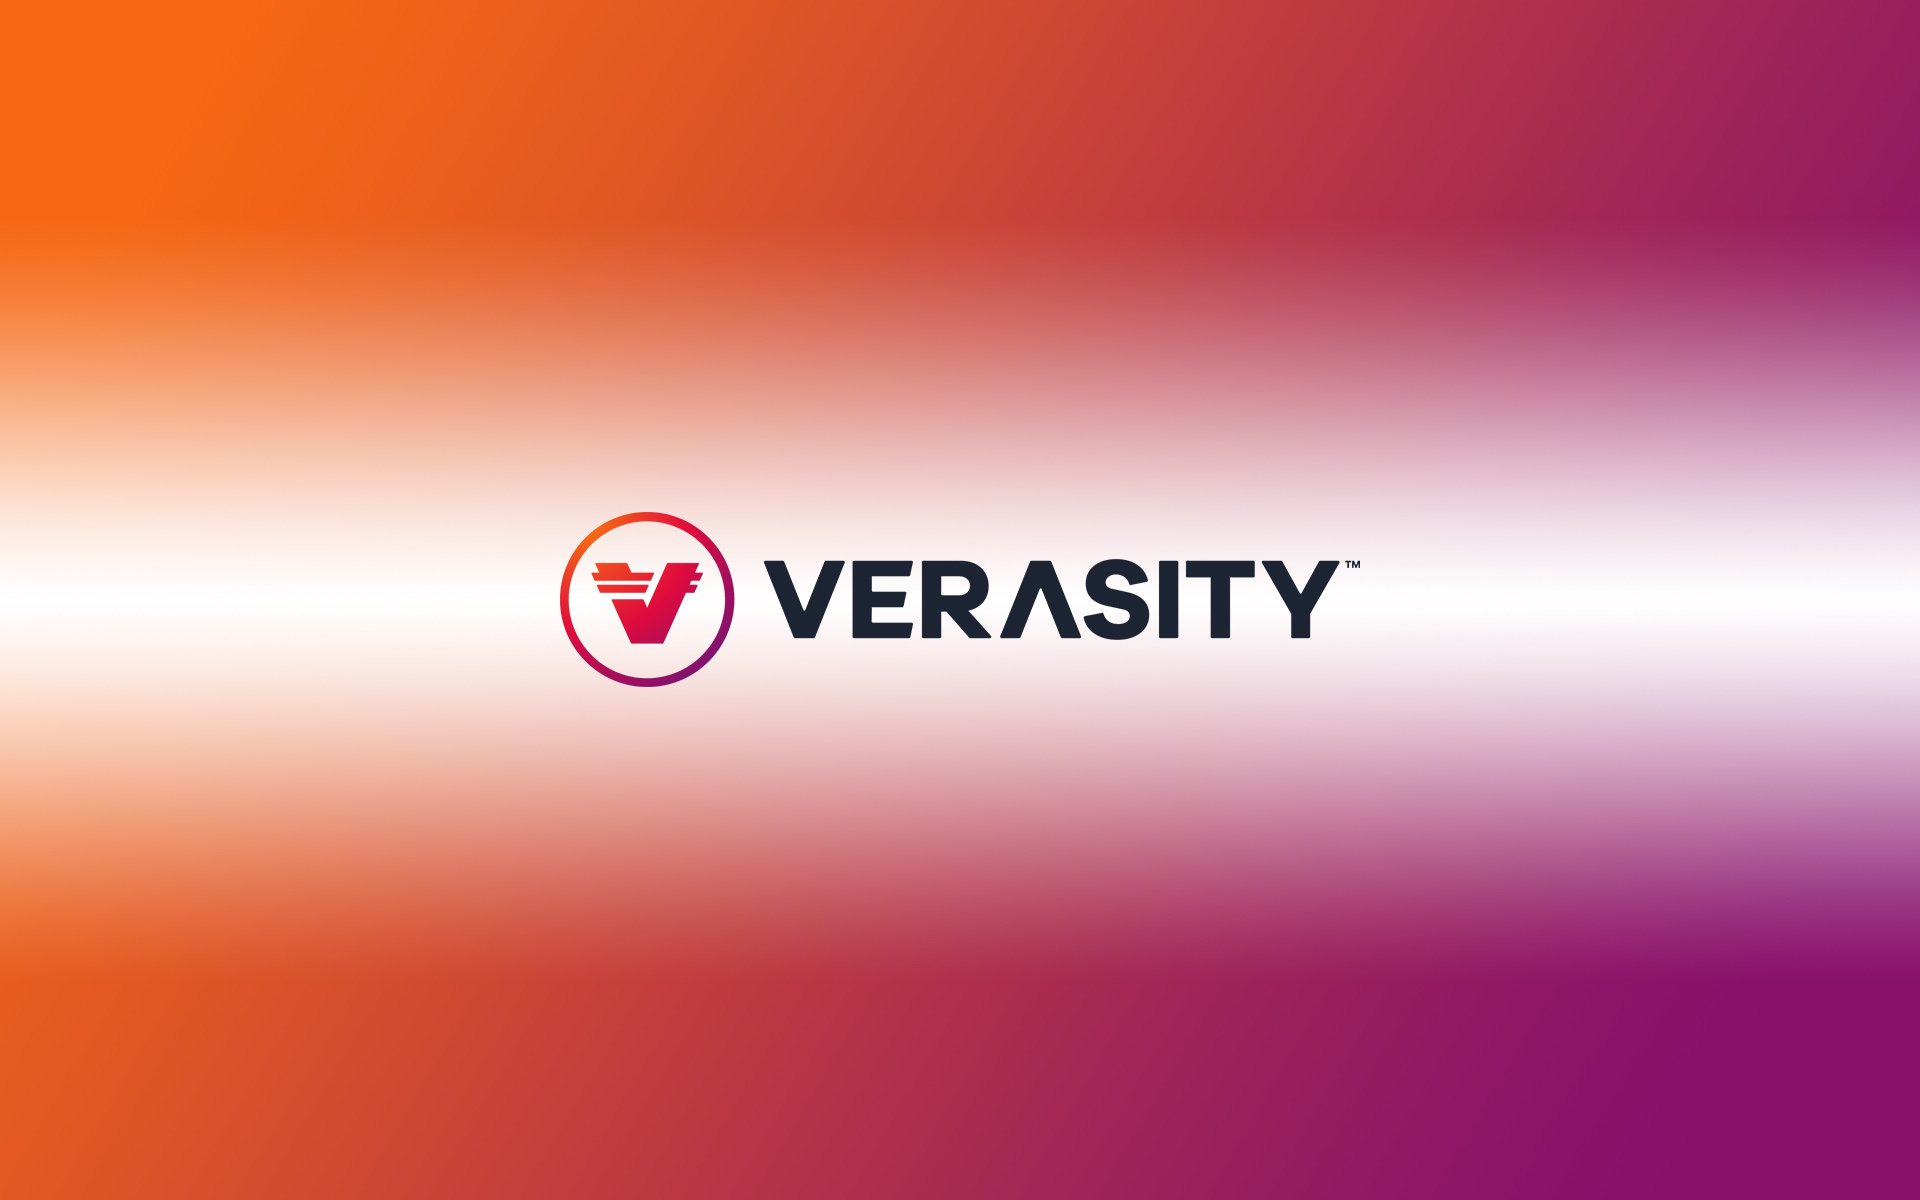 Viewers Can Now Earn VERA Cryptocurrency For Watching Videos On Verasity